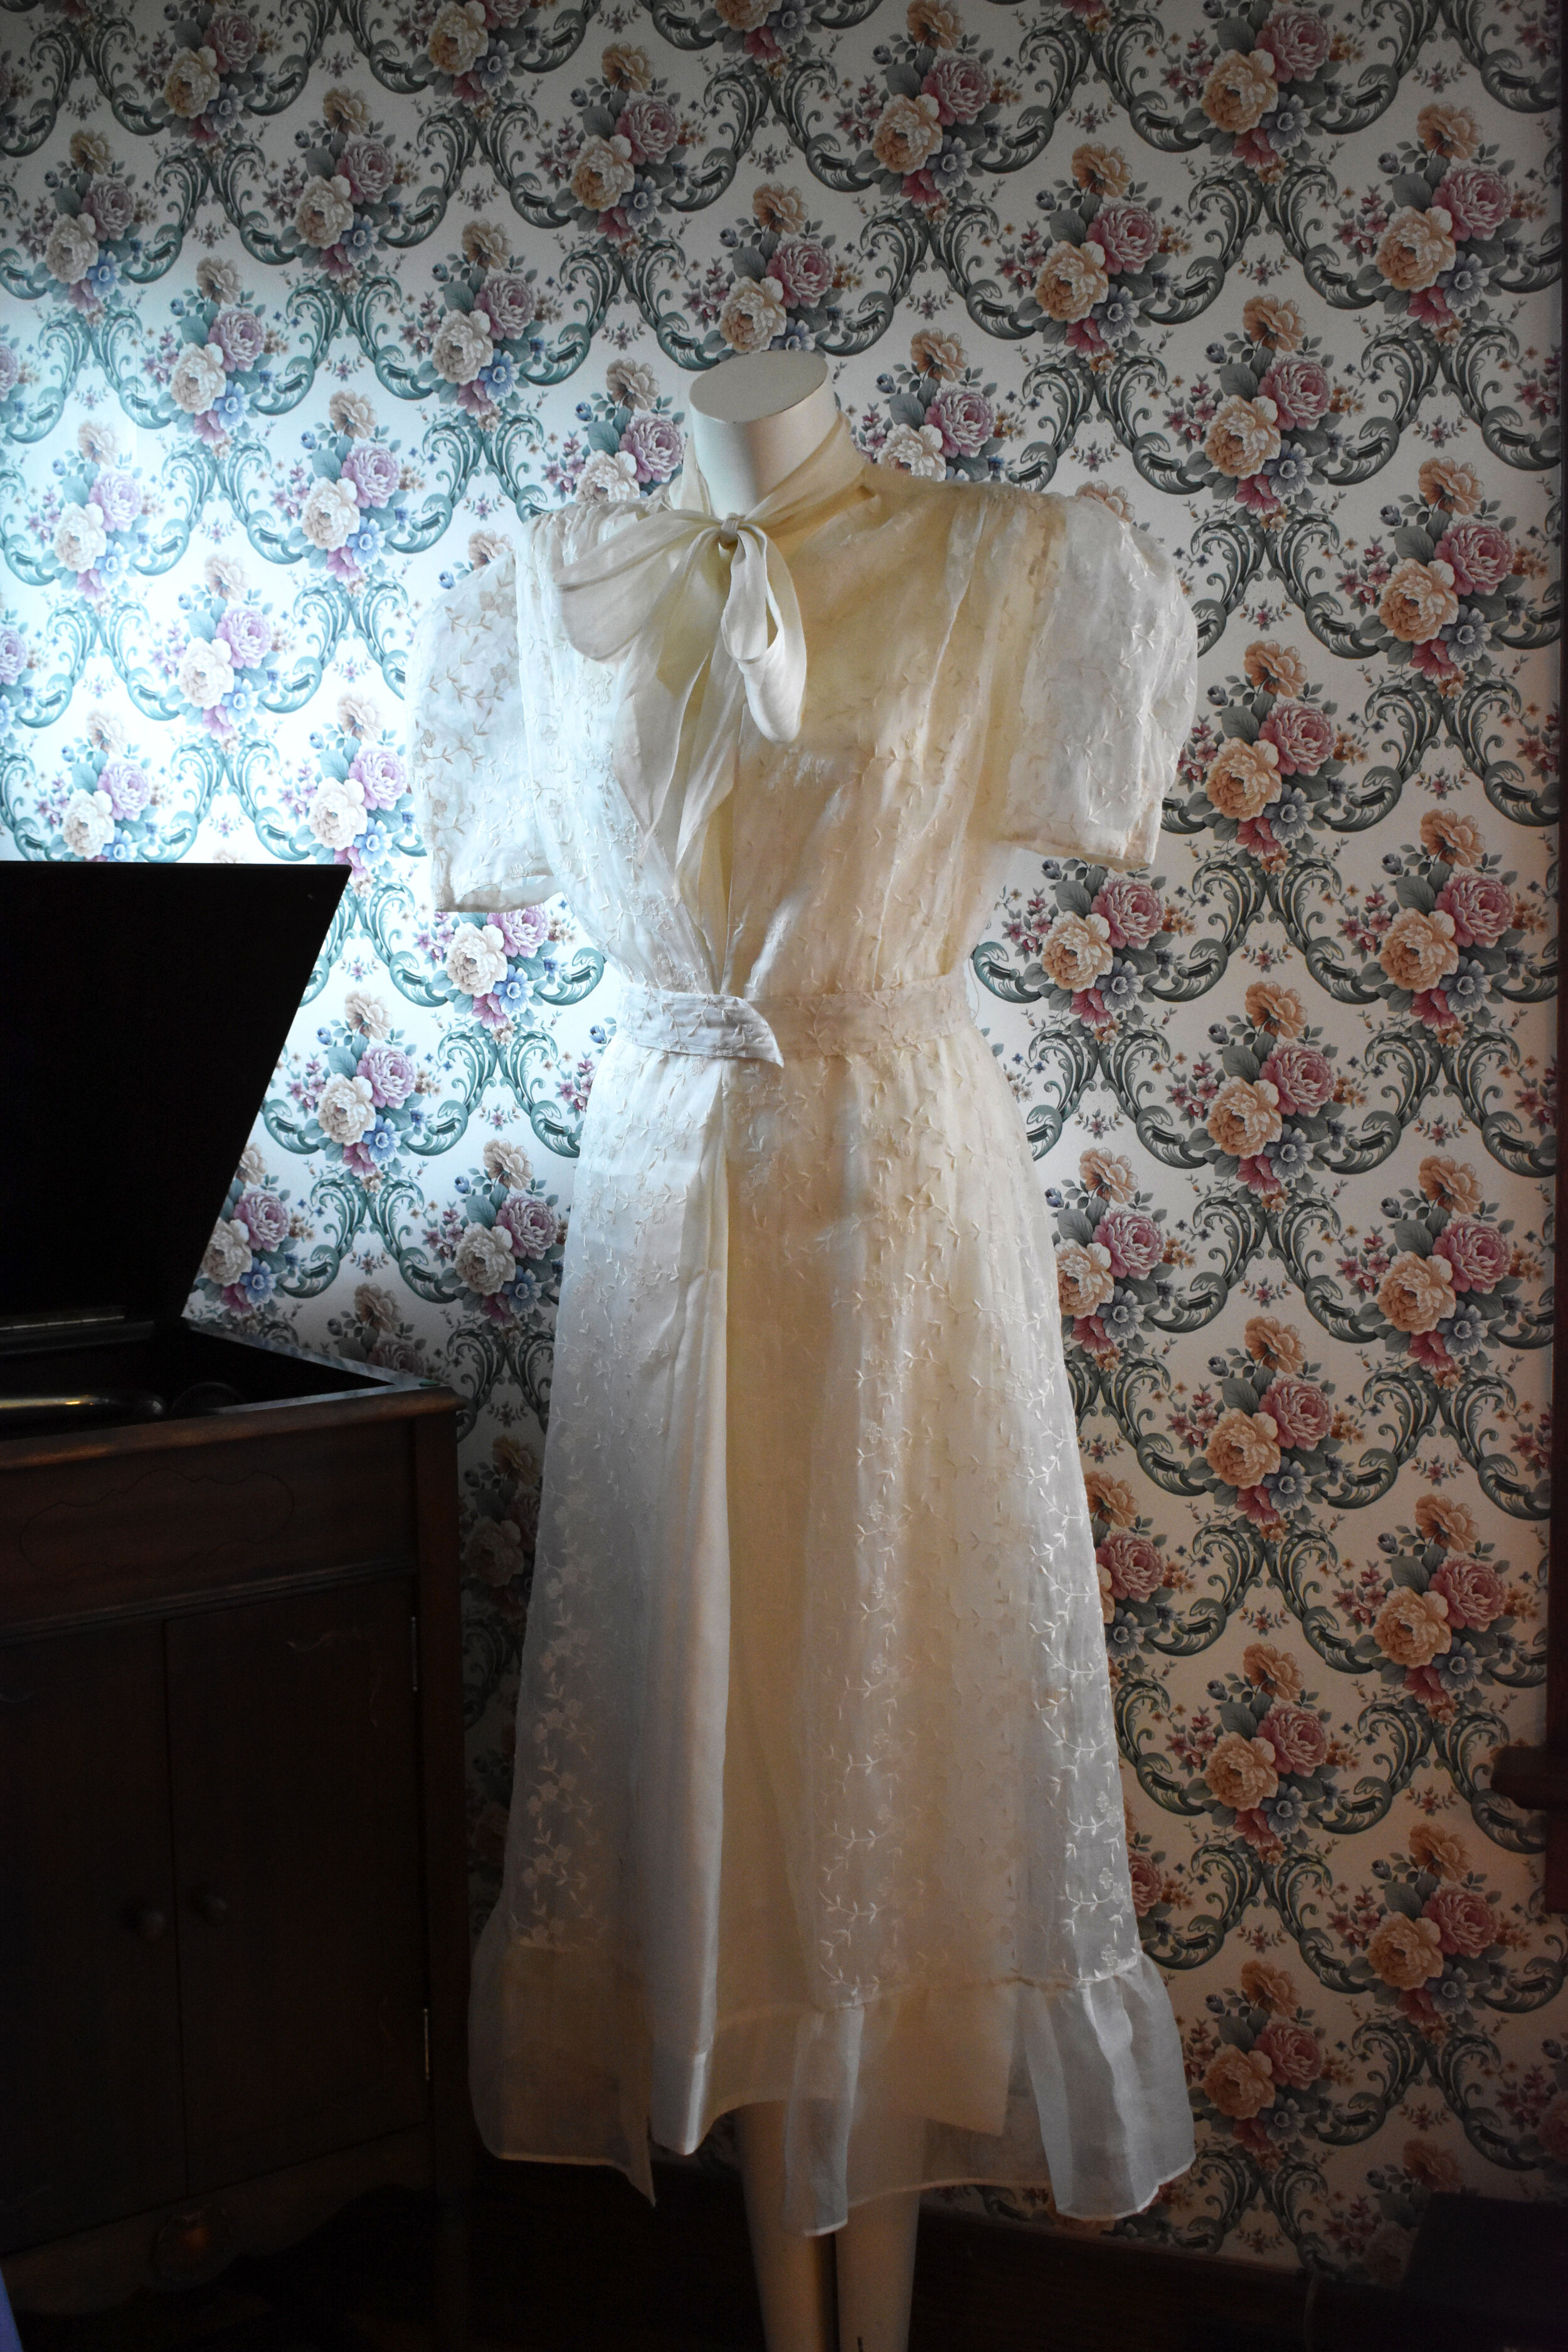 Afternoon Dress, circa 1939. From the collection of Ivan Sayers.